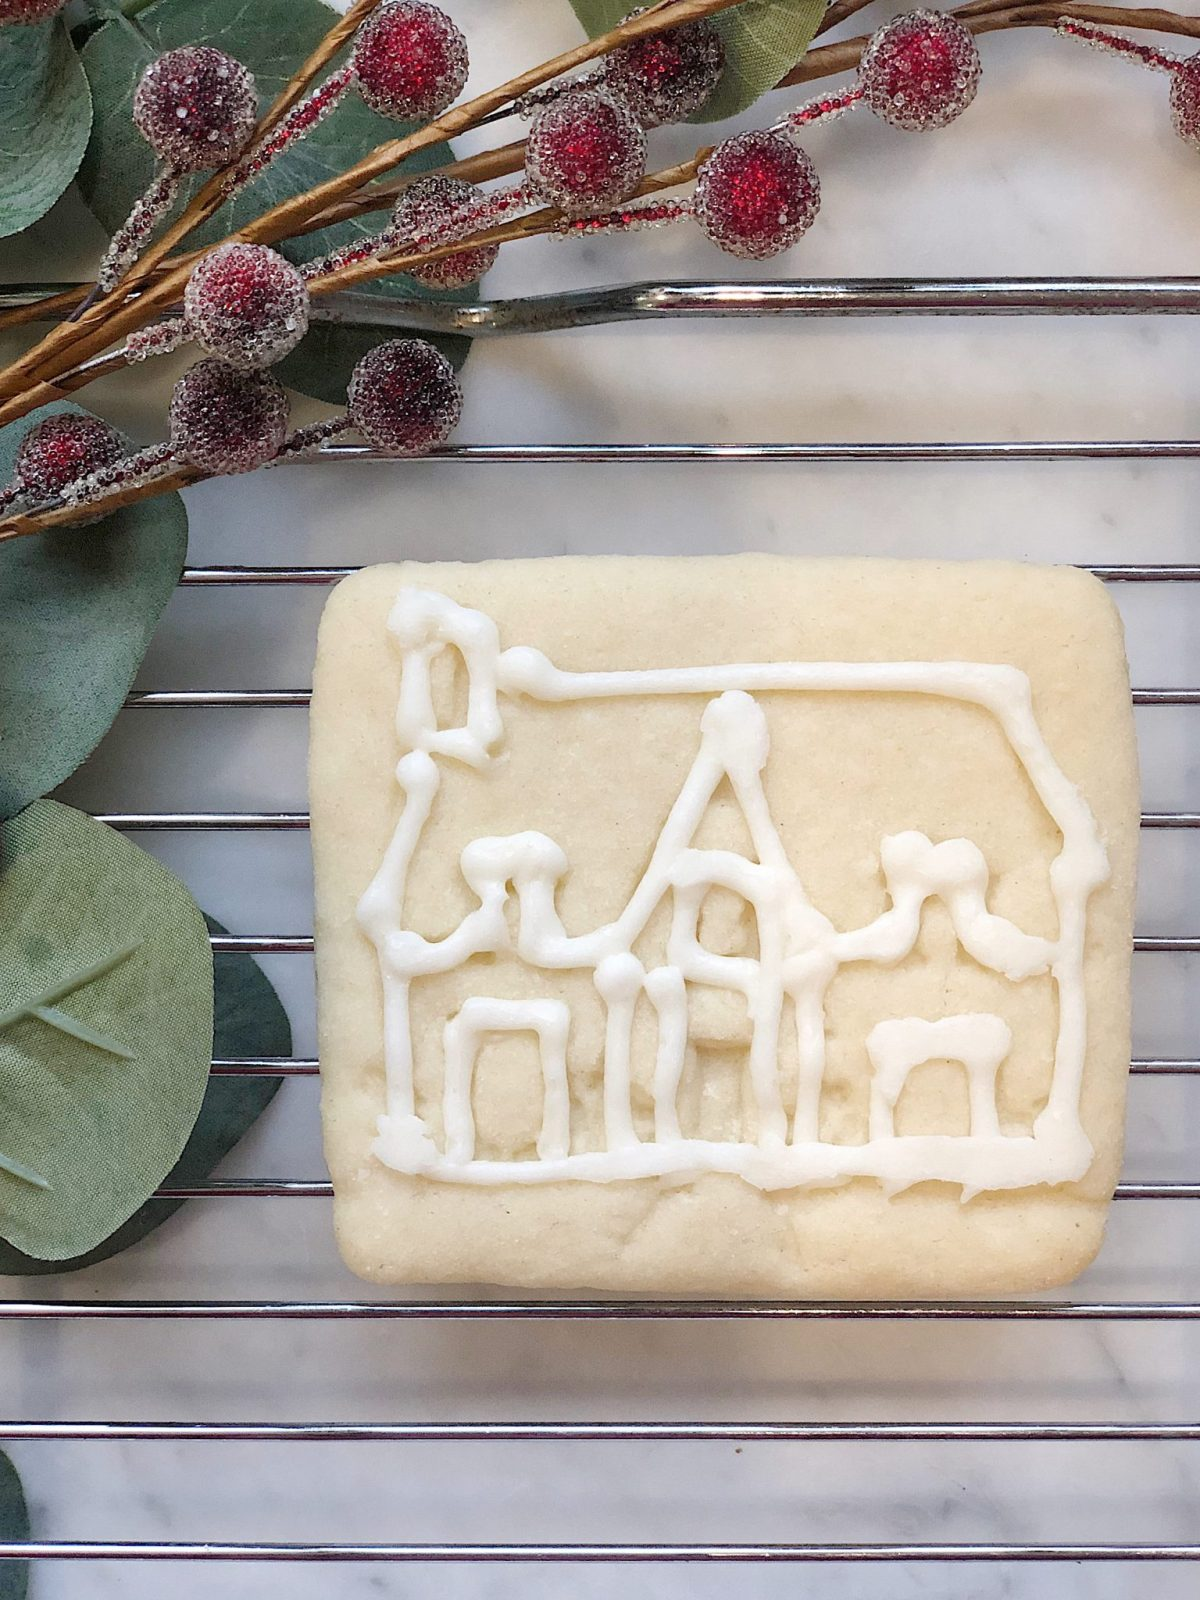 My Favorite Christmas Cookies - My 100 Year Old Home